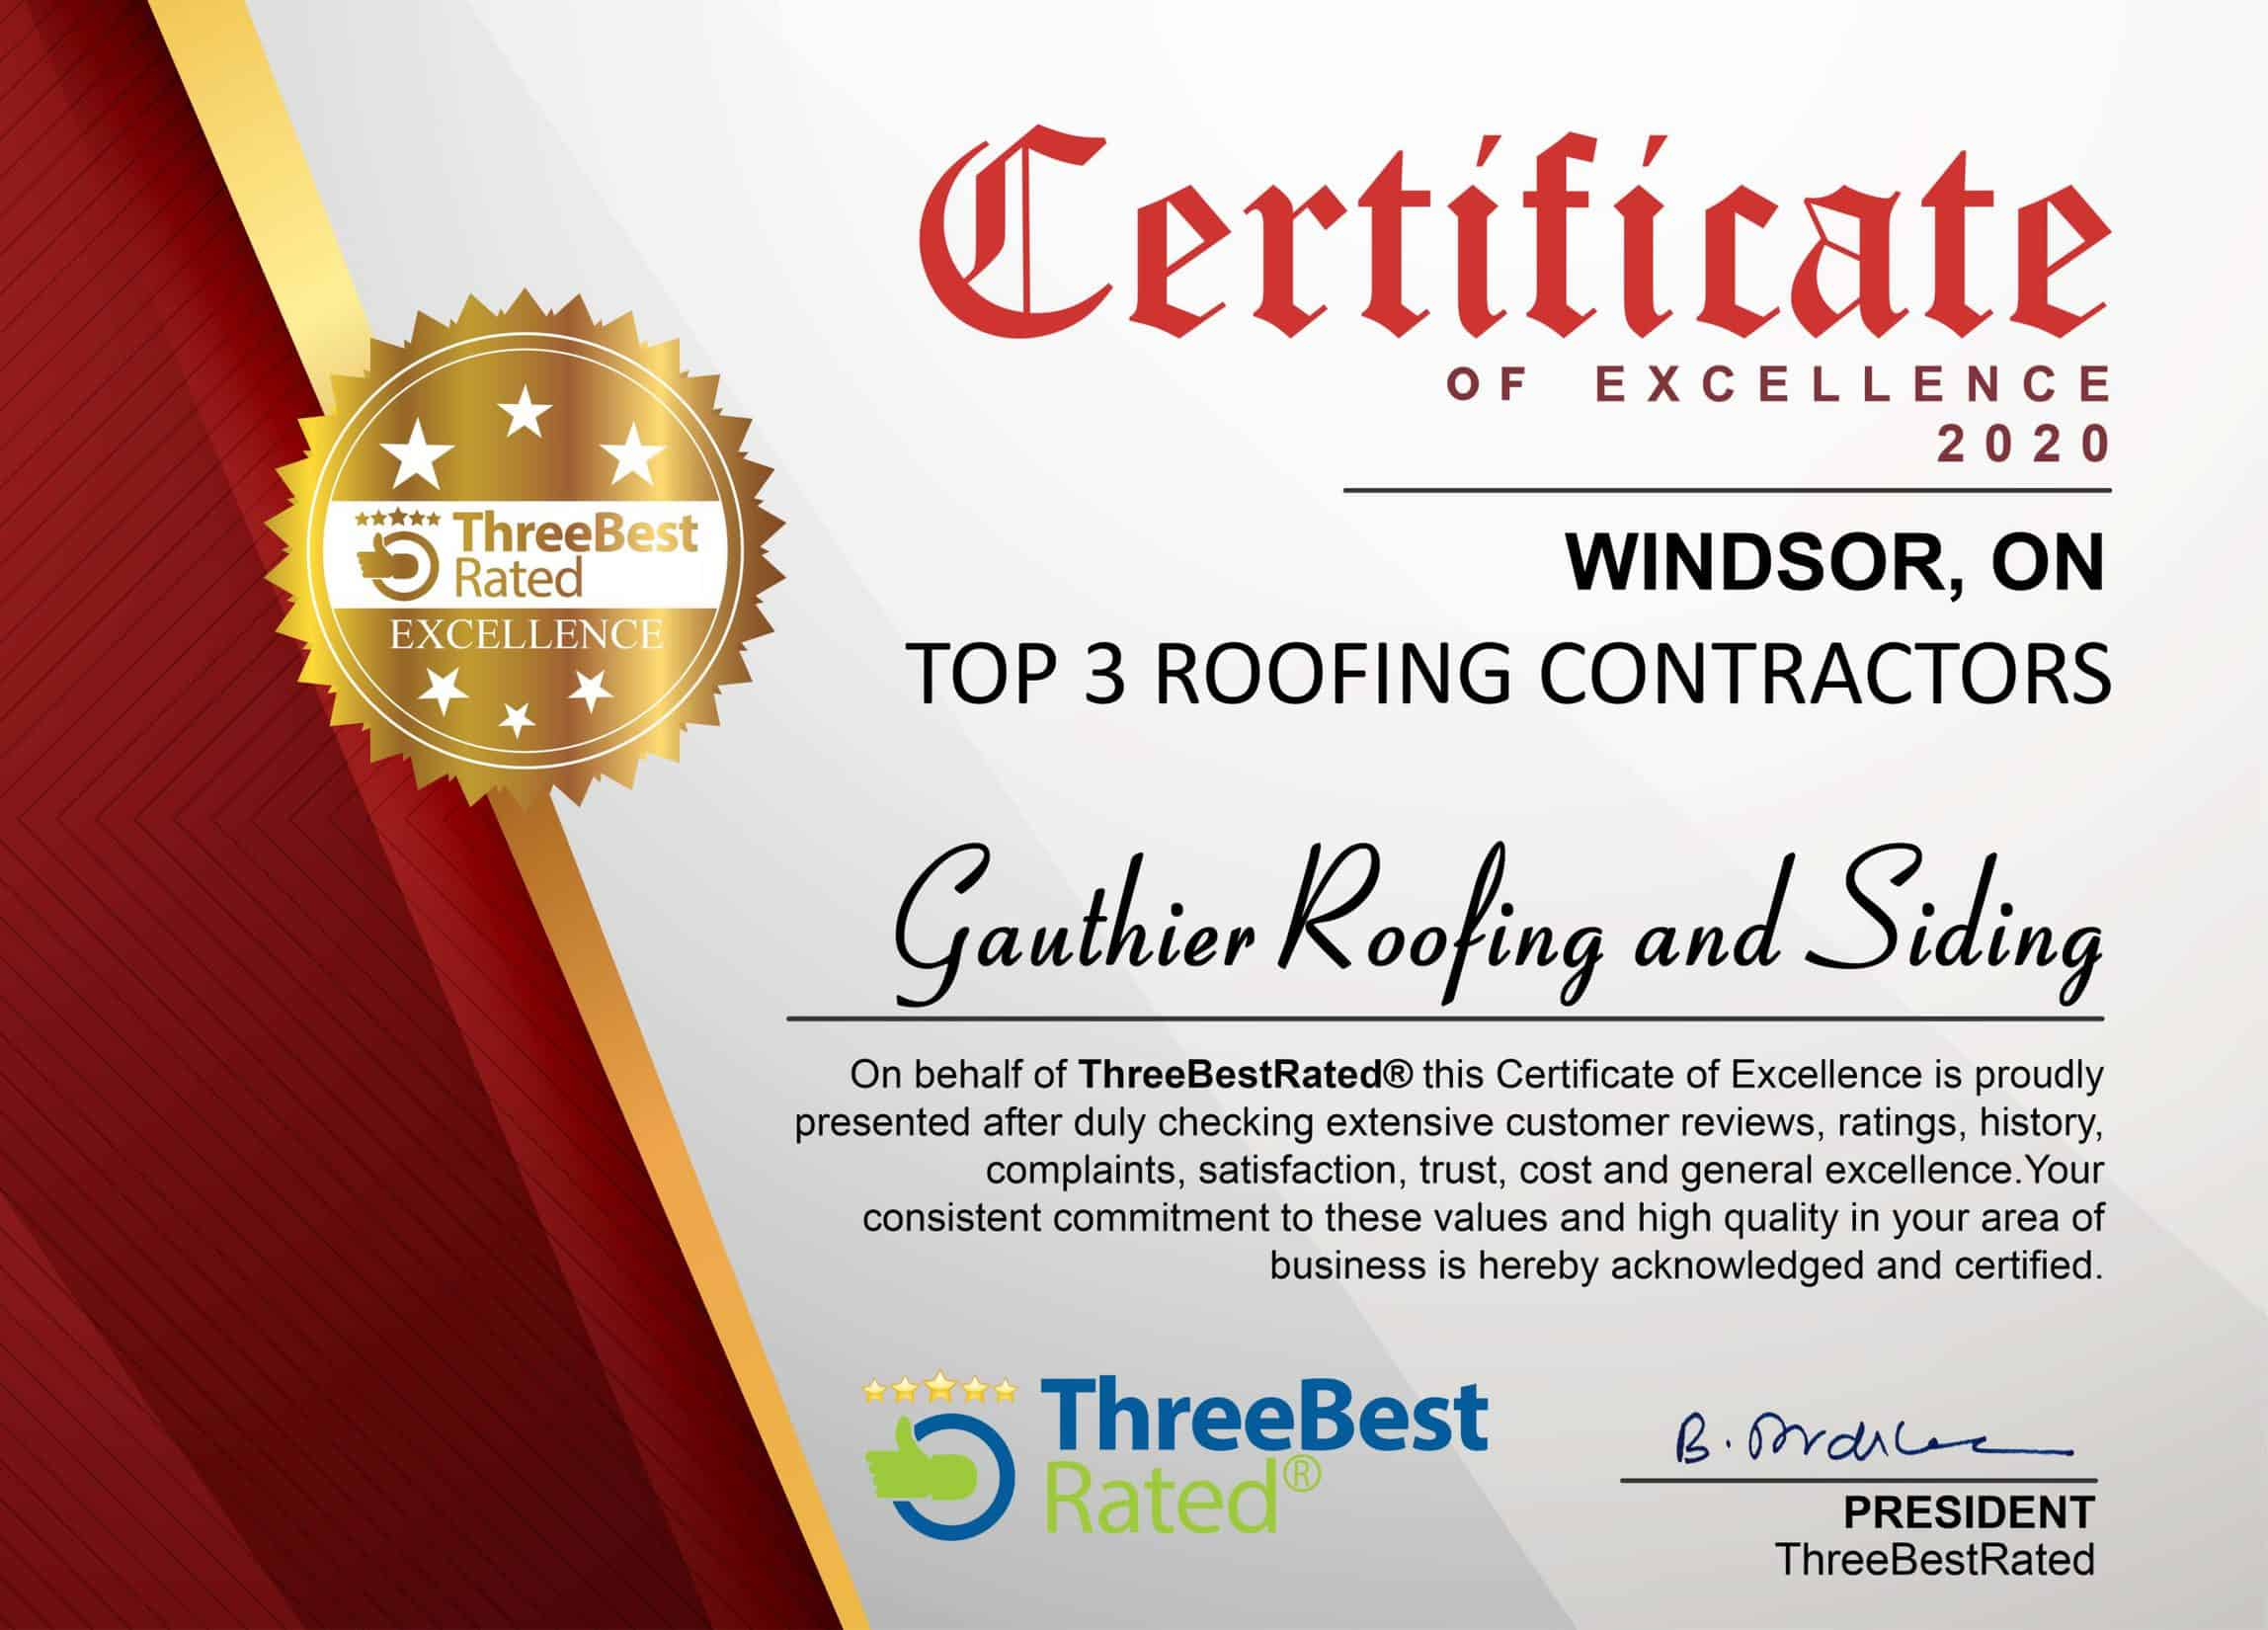 Three Best Rated Certificate - Top Roofing Contractor in Windsor